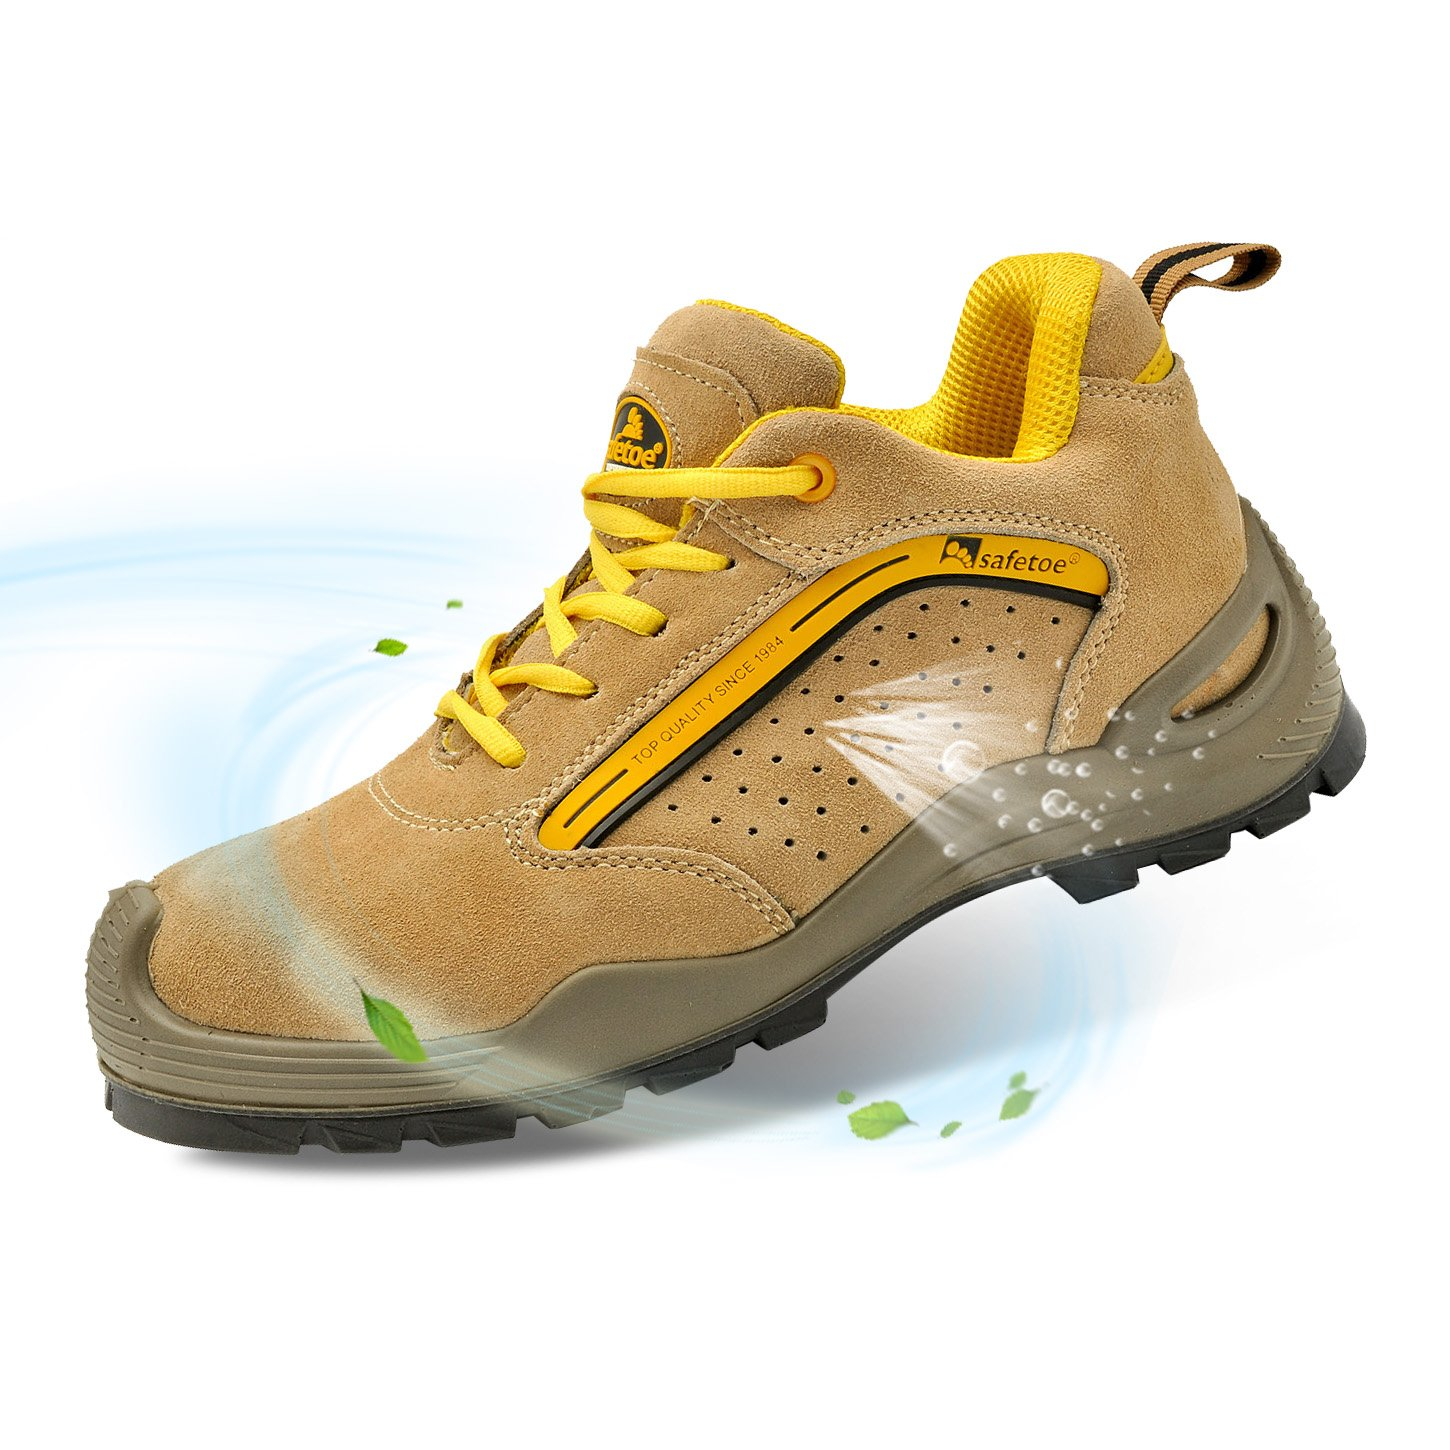 SAFETOE Mens Safety Work Shoes - L7296 Leather & Steel Toe Work Boots for Heavy Duty Work Wide Fit Yellow Size 11 US